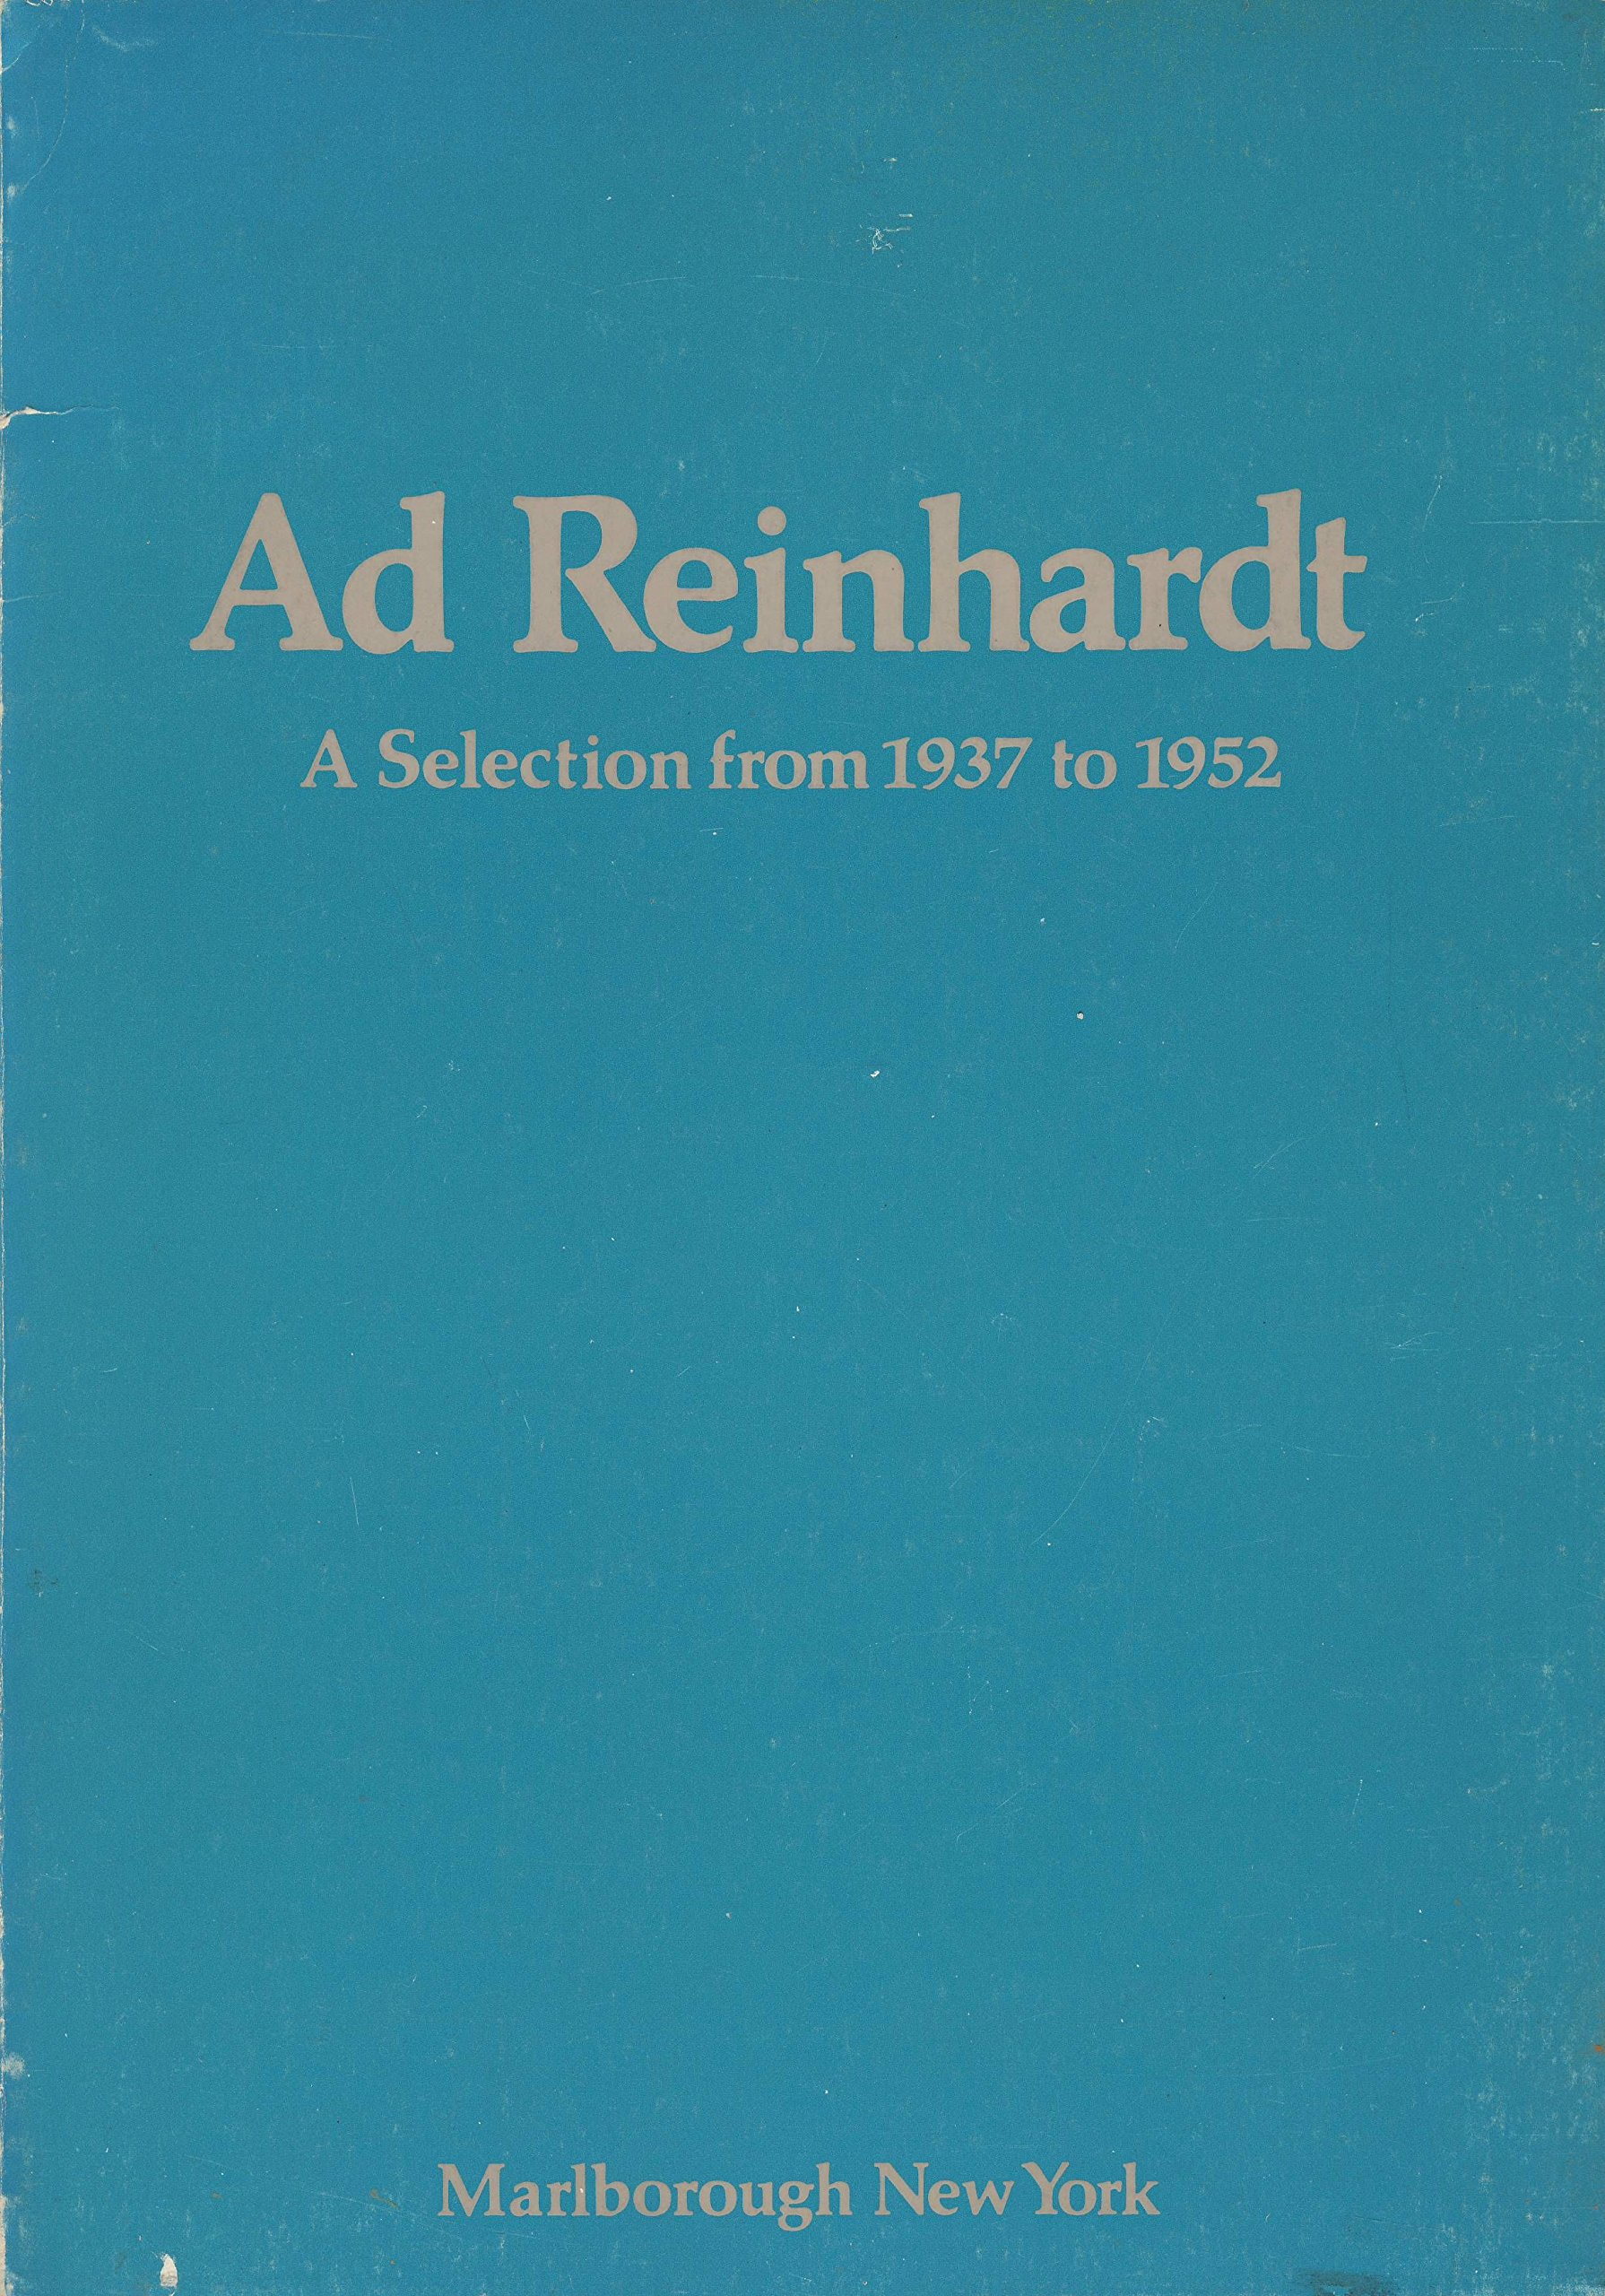 ad reinhardt a selection from 1937 to 1952